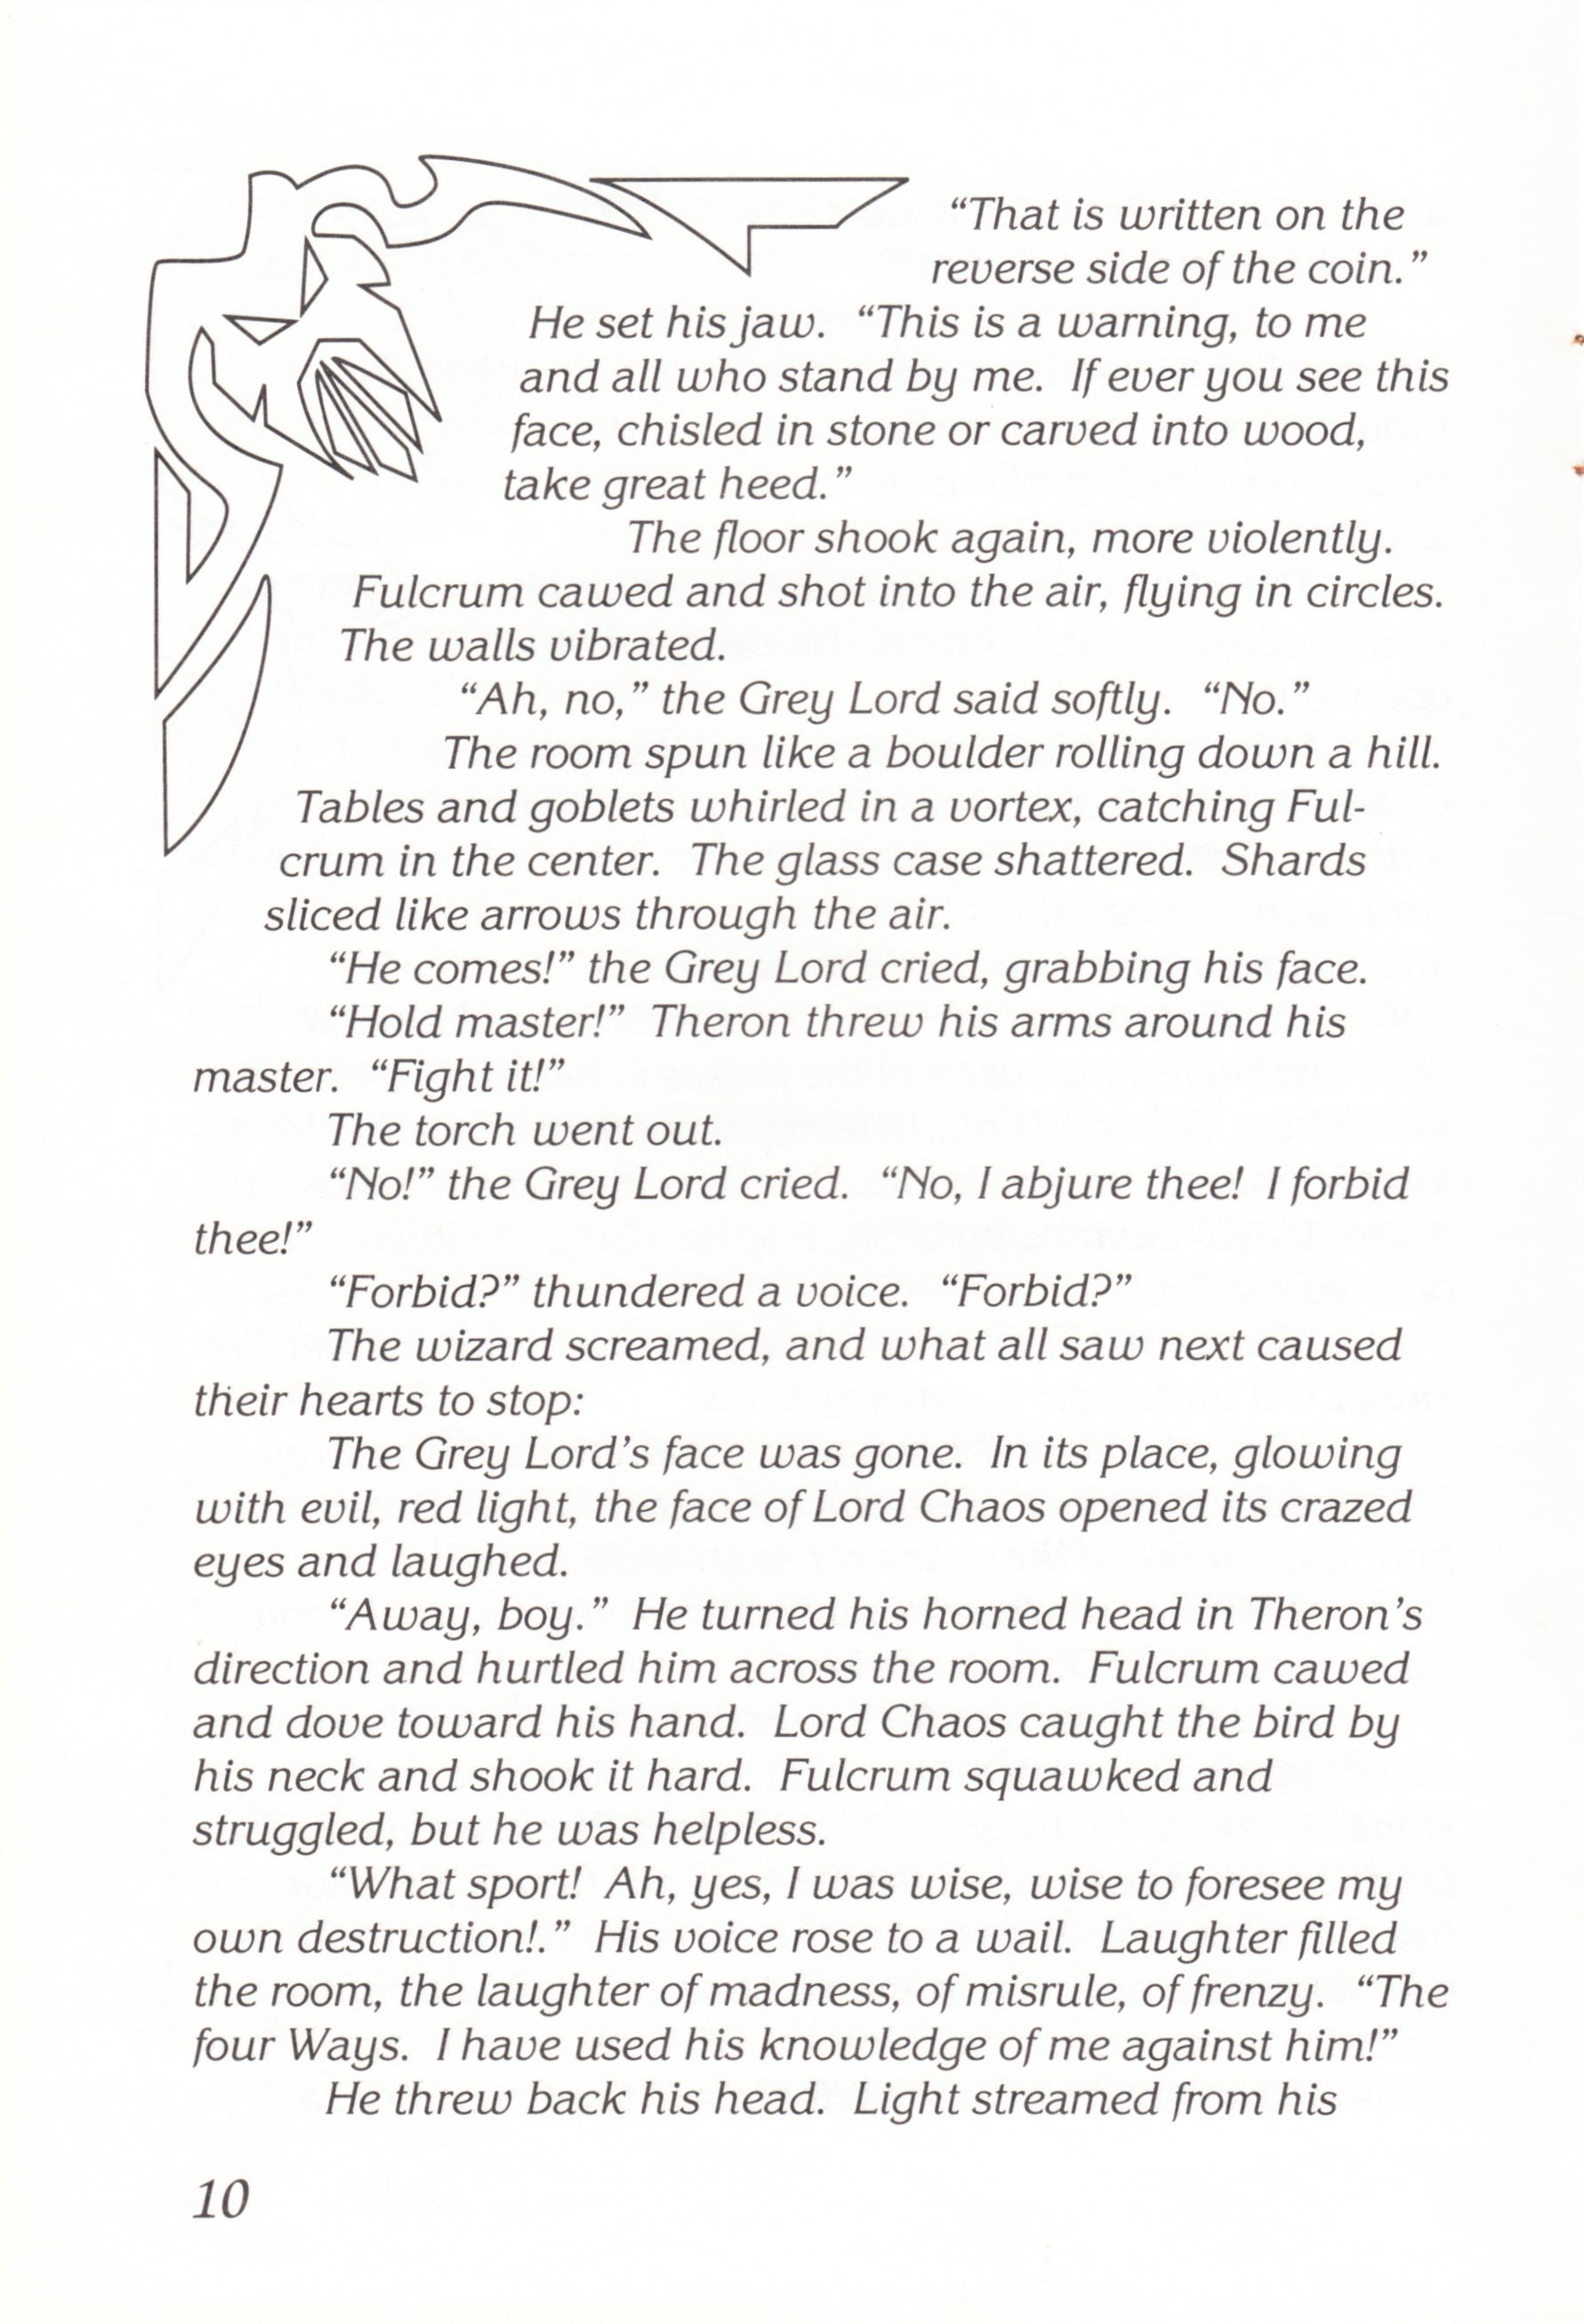 Game - Chaos Strikes Back - UK - Atari ST - Manual - Page 012 - Scan